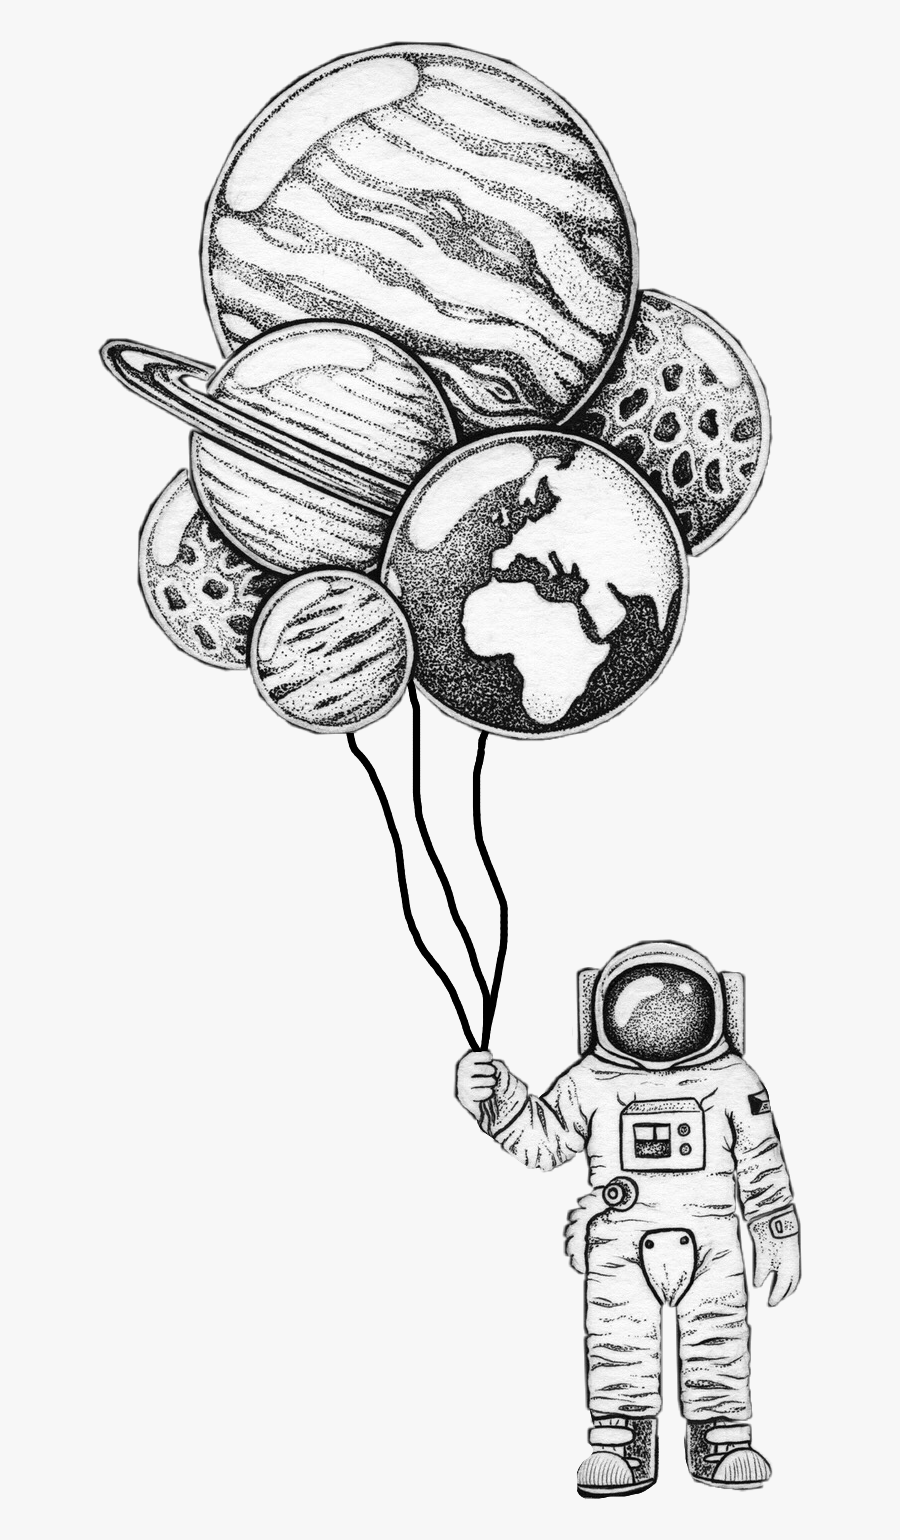 #space #astronaut #balloon #planet 🌏 #freetoedit ...